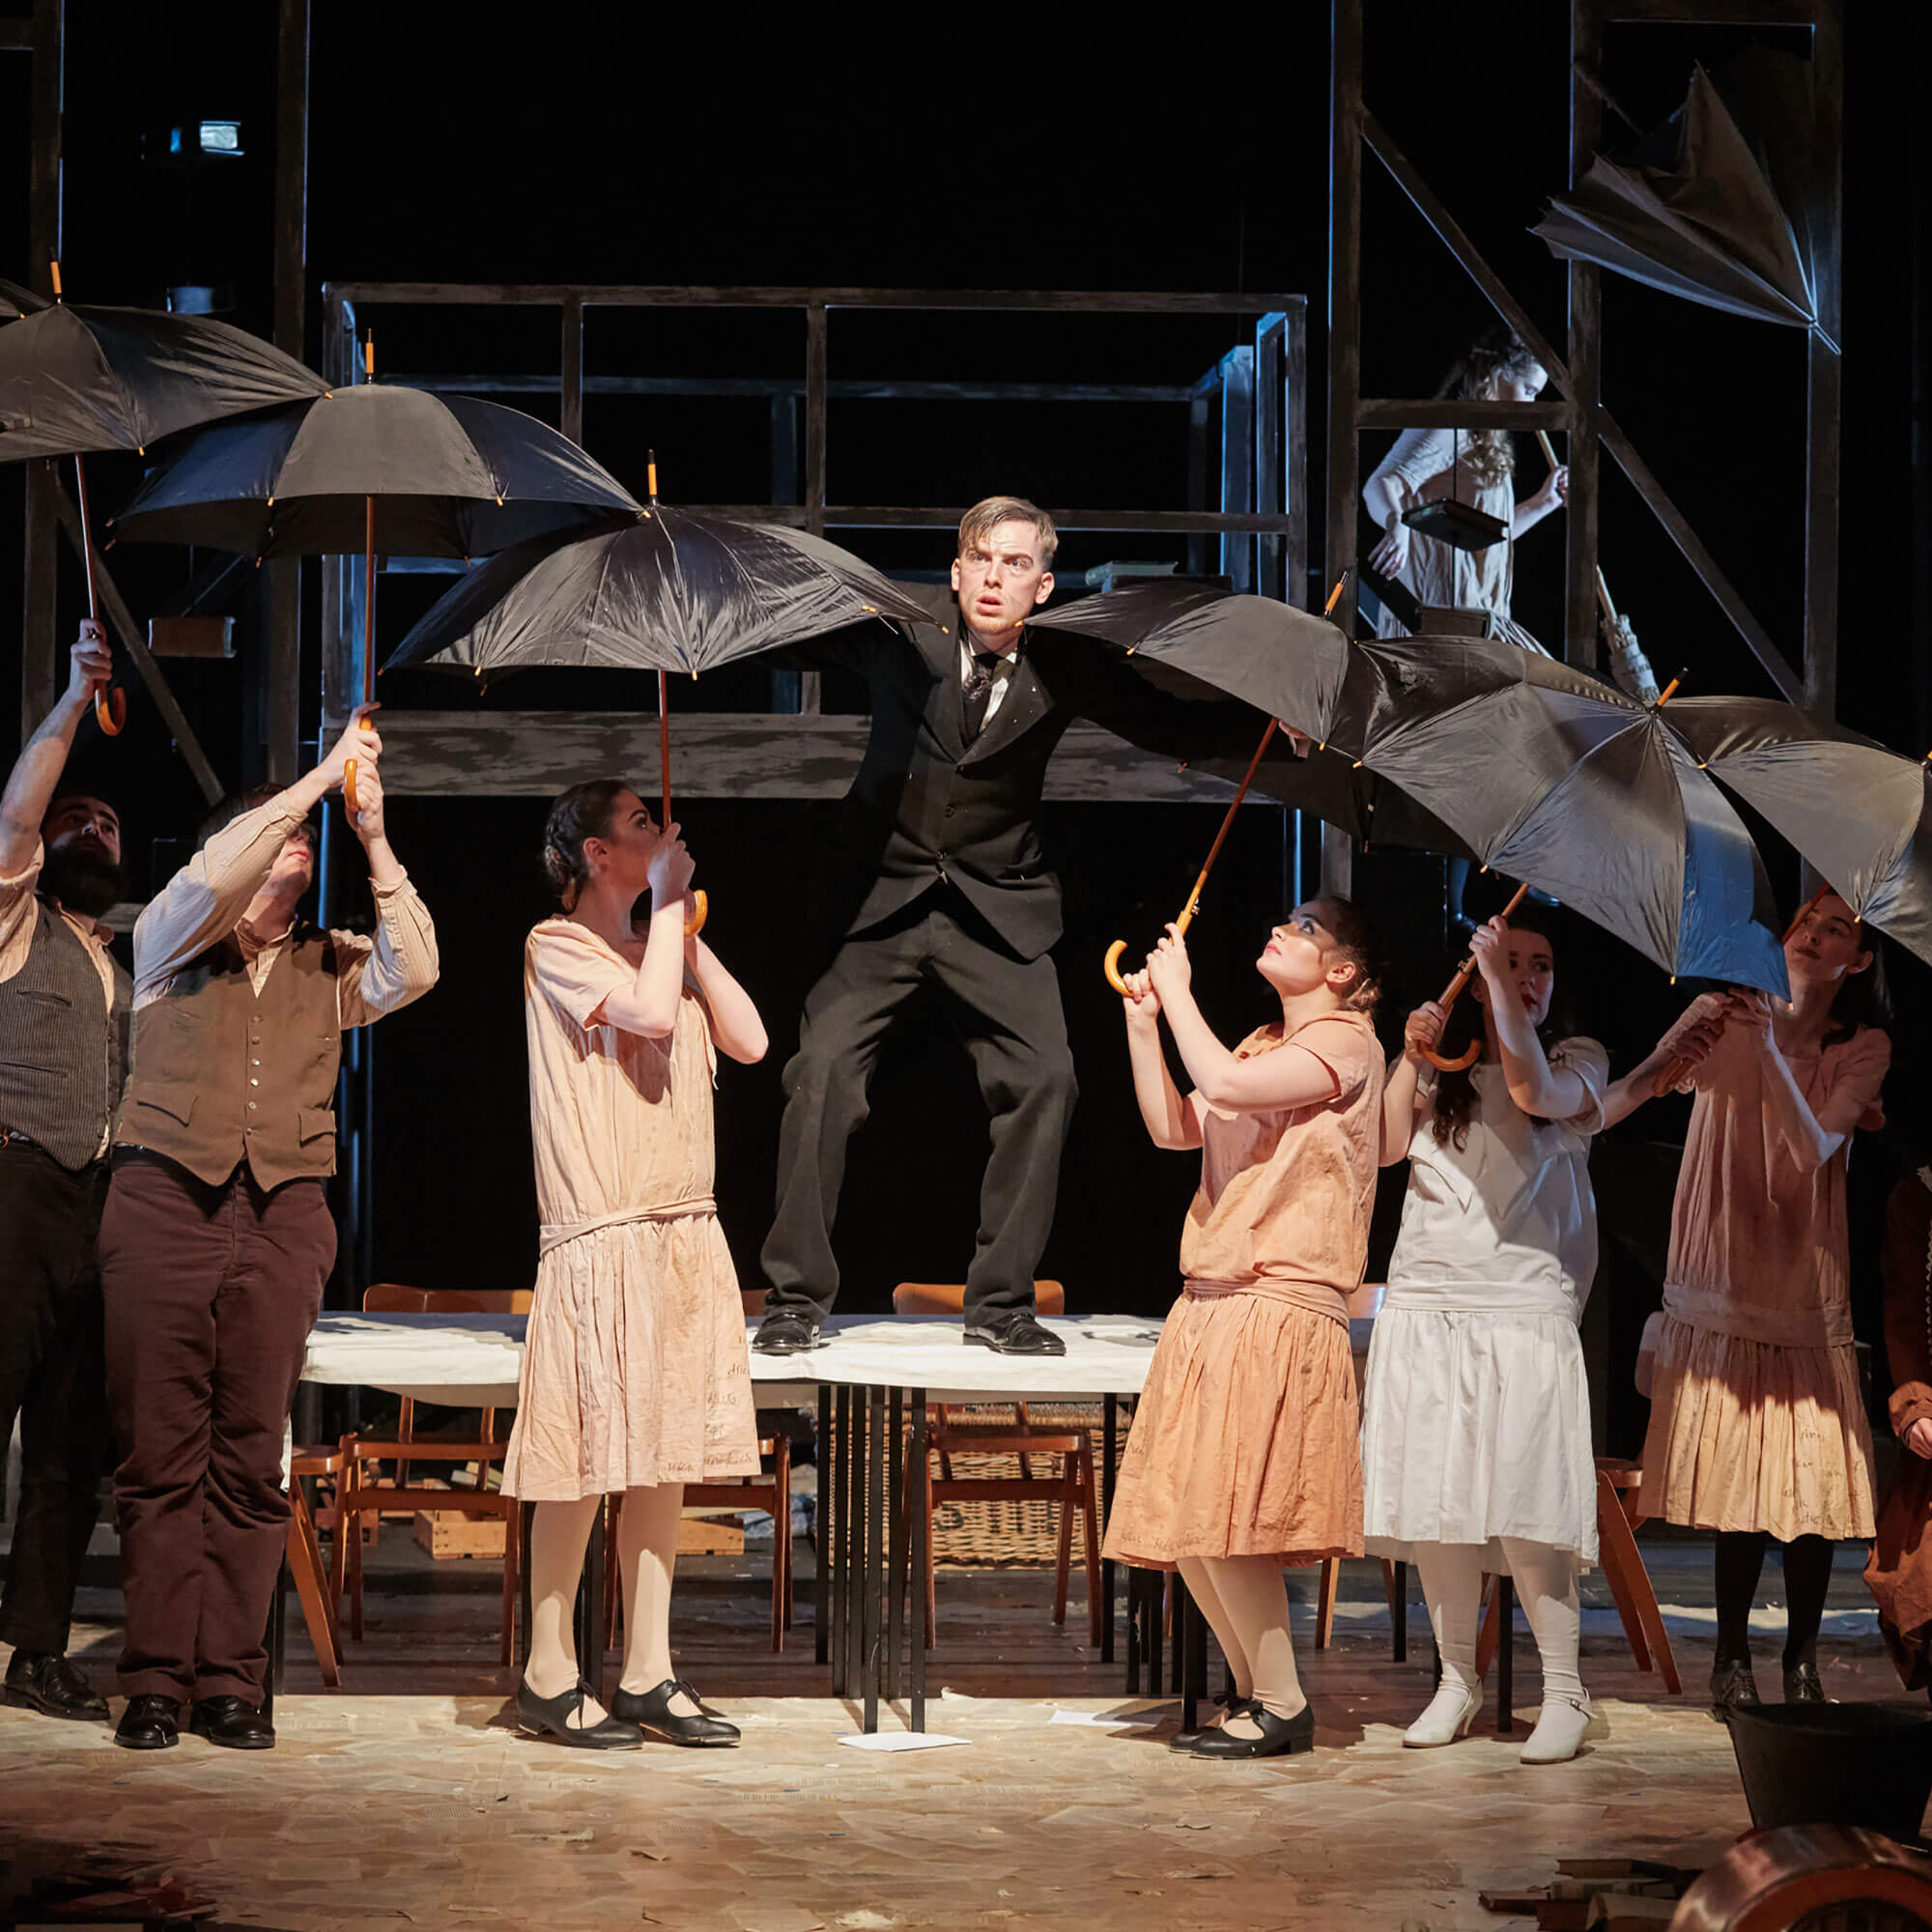 Theatre students holding umbrellas whilst performing on stage at Derby Theatre